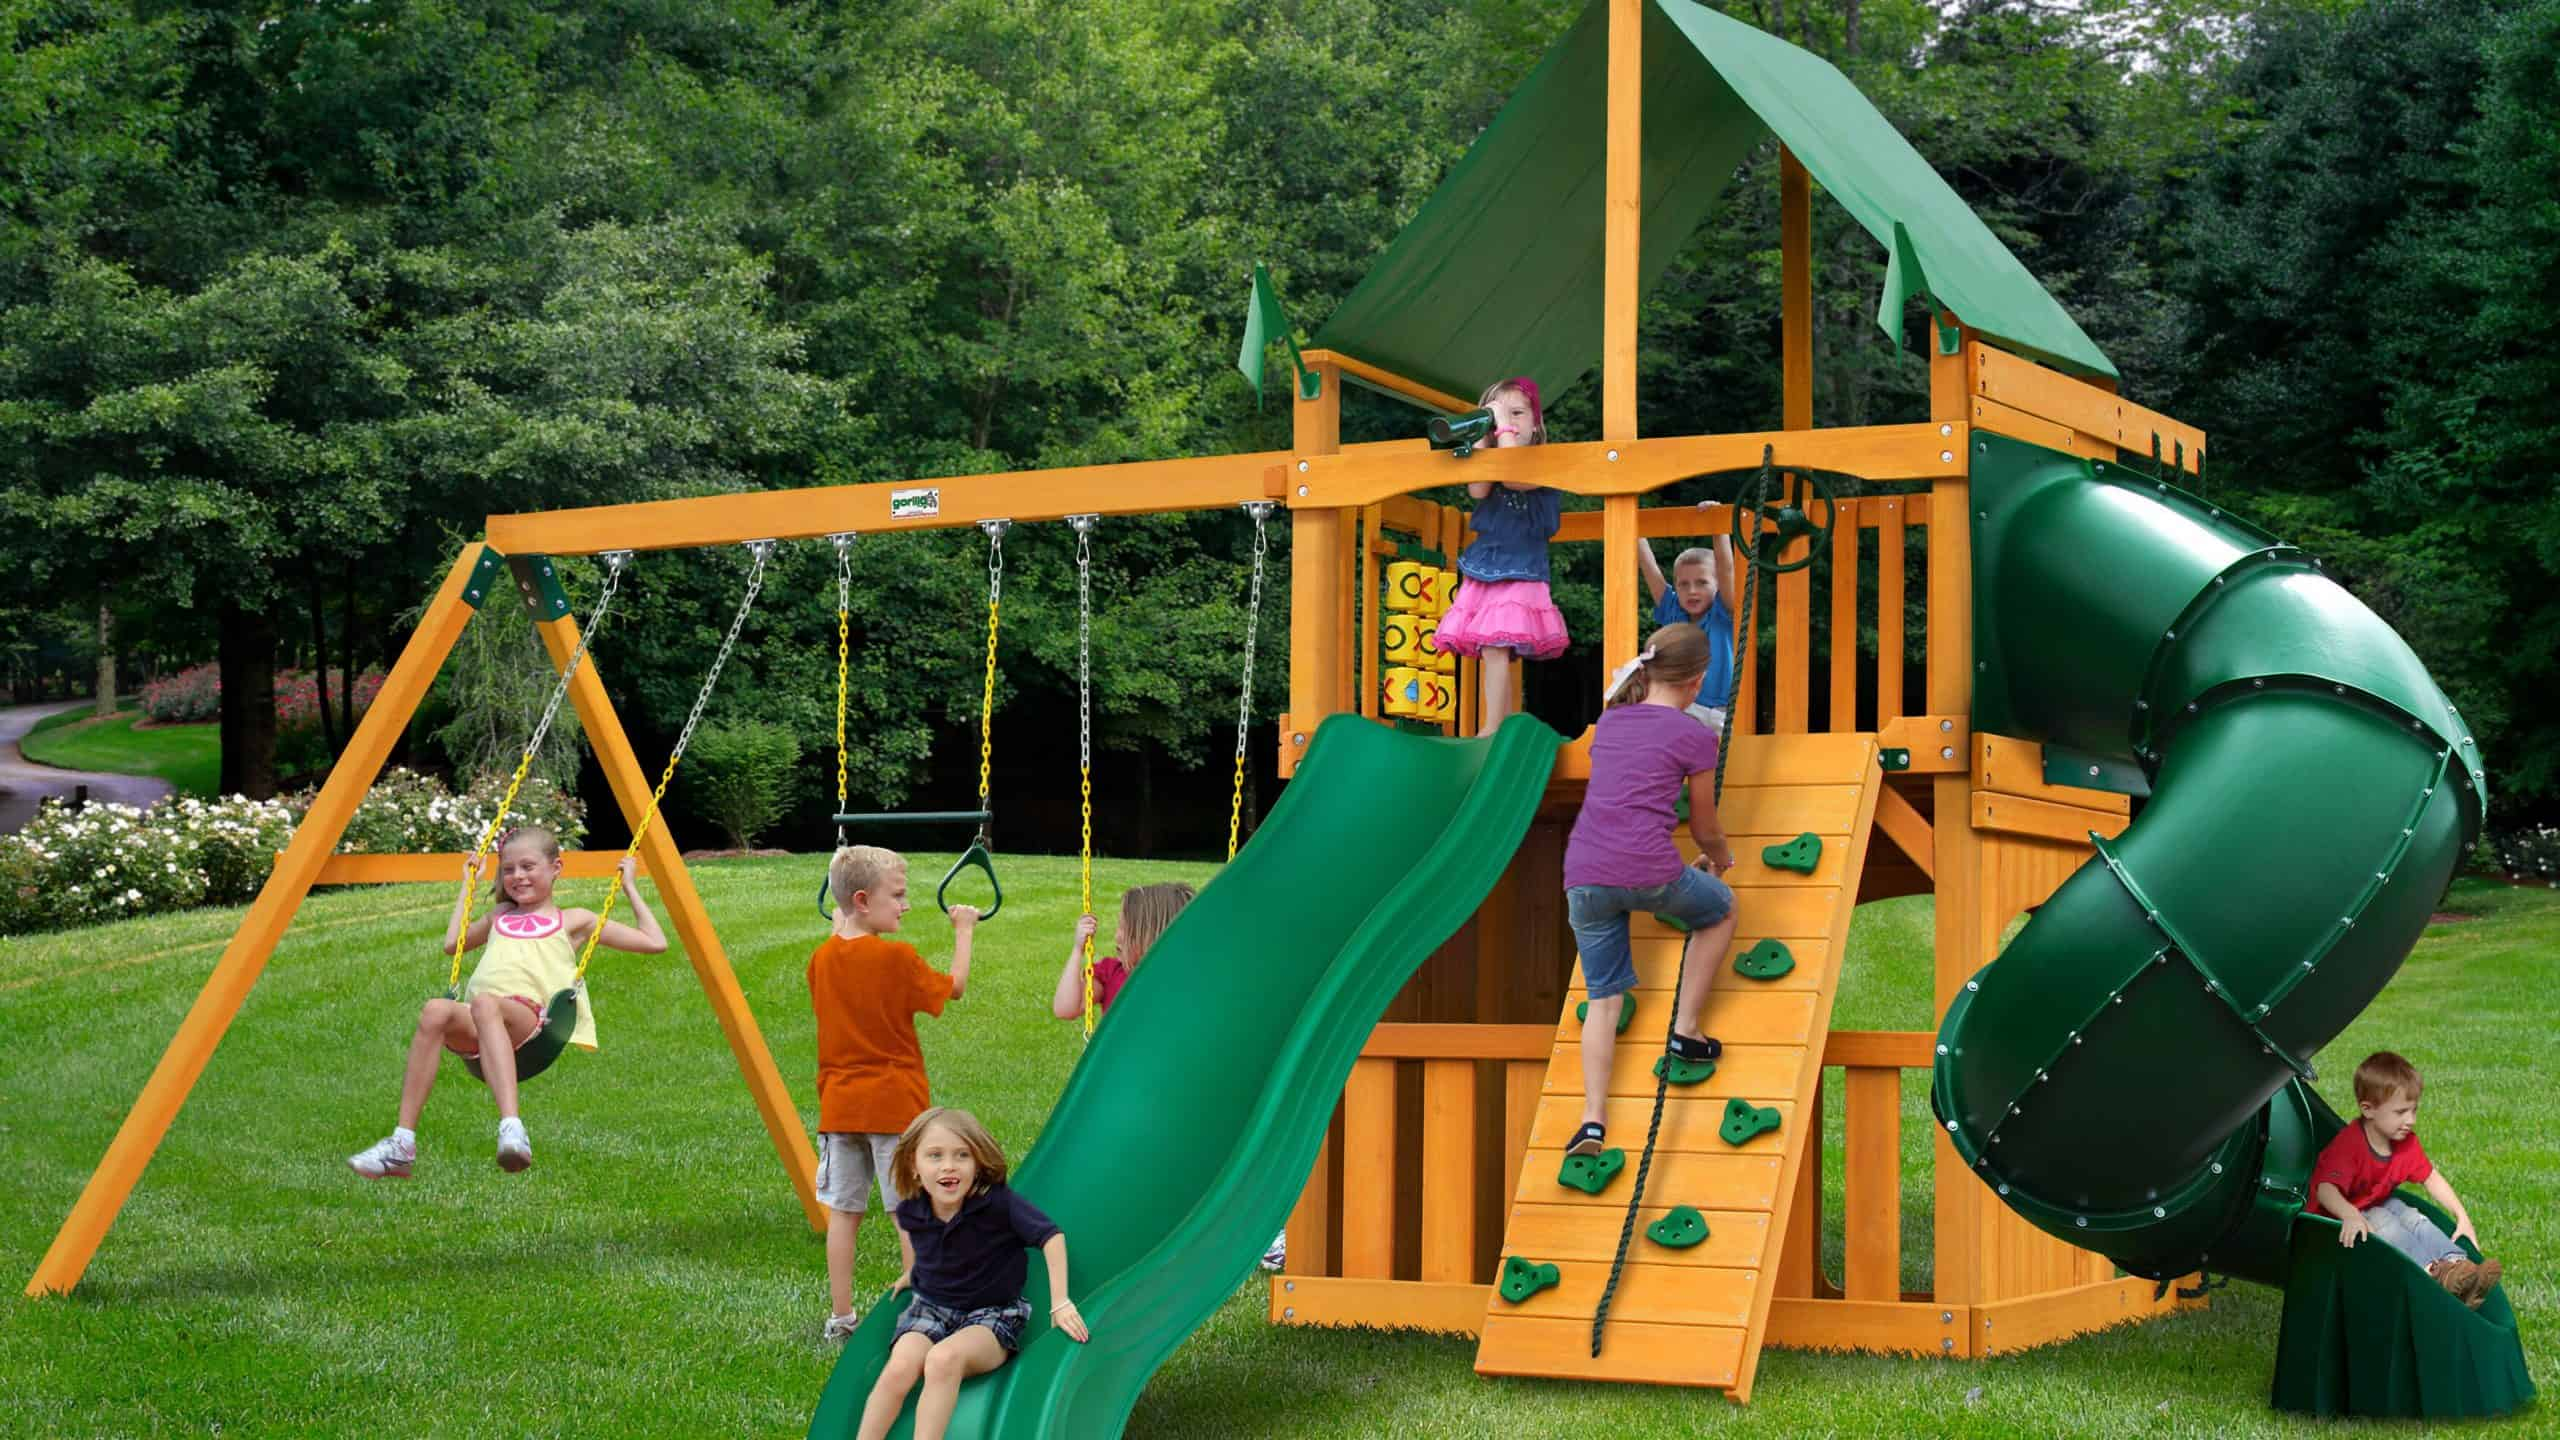 mountaineer clubhouse swing set with canopy roof 41f5000318ac497392909f34047f5d98 scaled